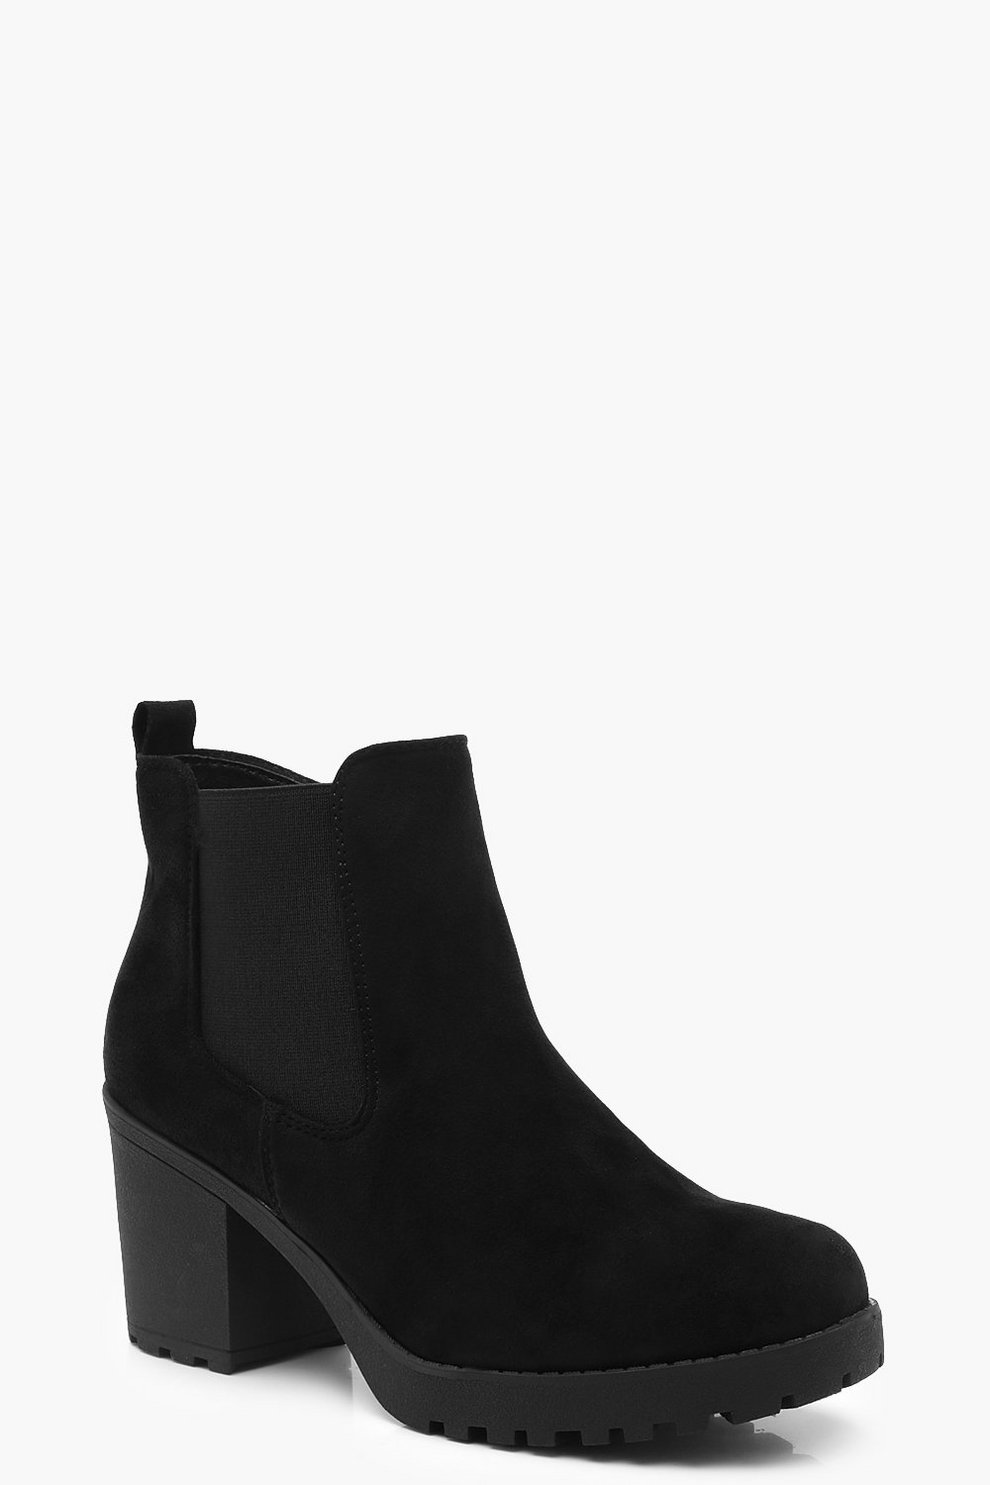 c2e2be59ff7 Chunky Heel Chelsea Boots